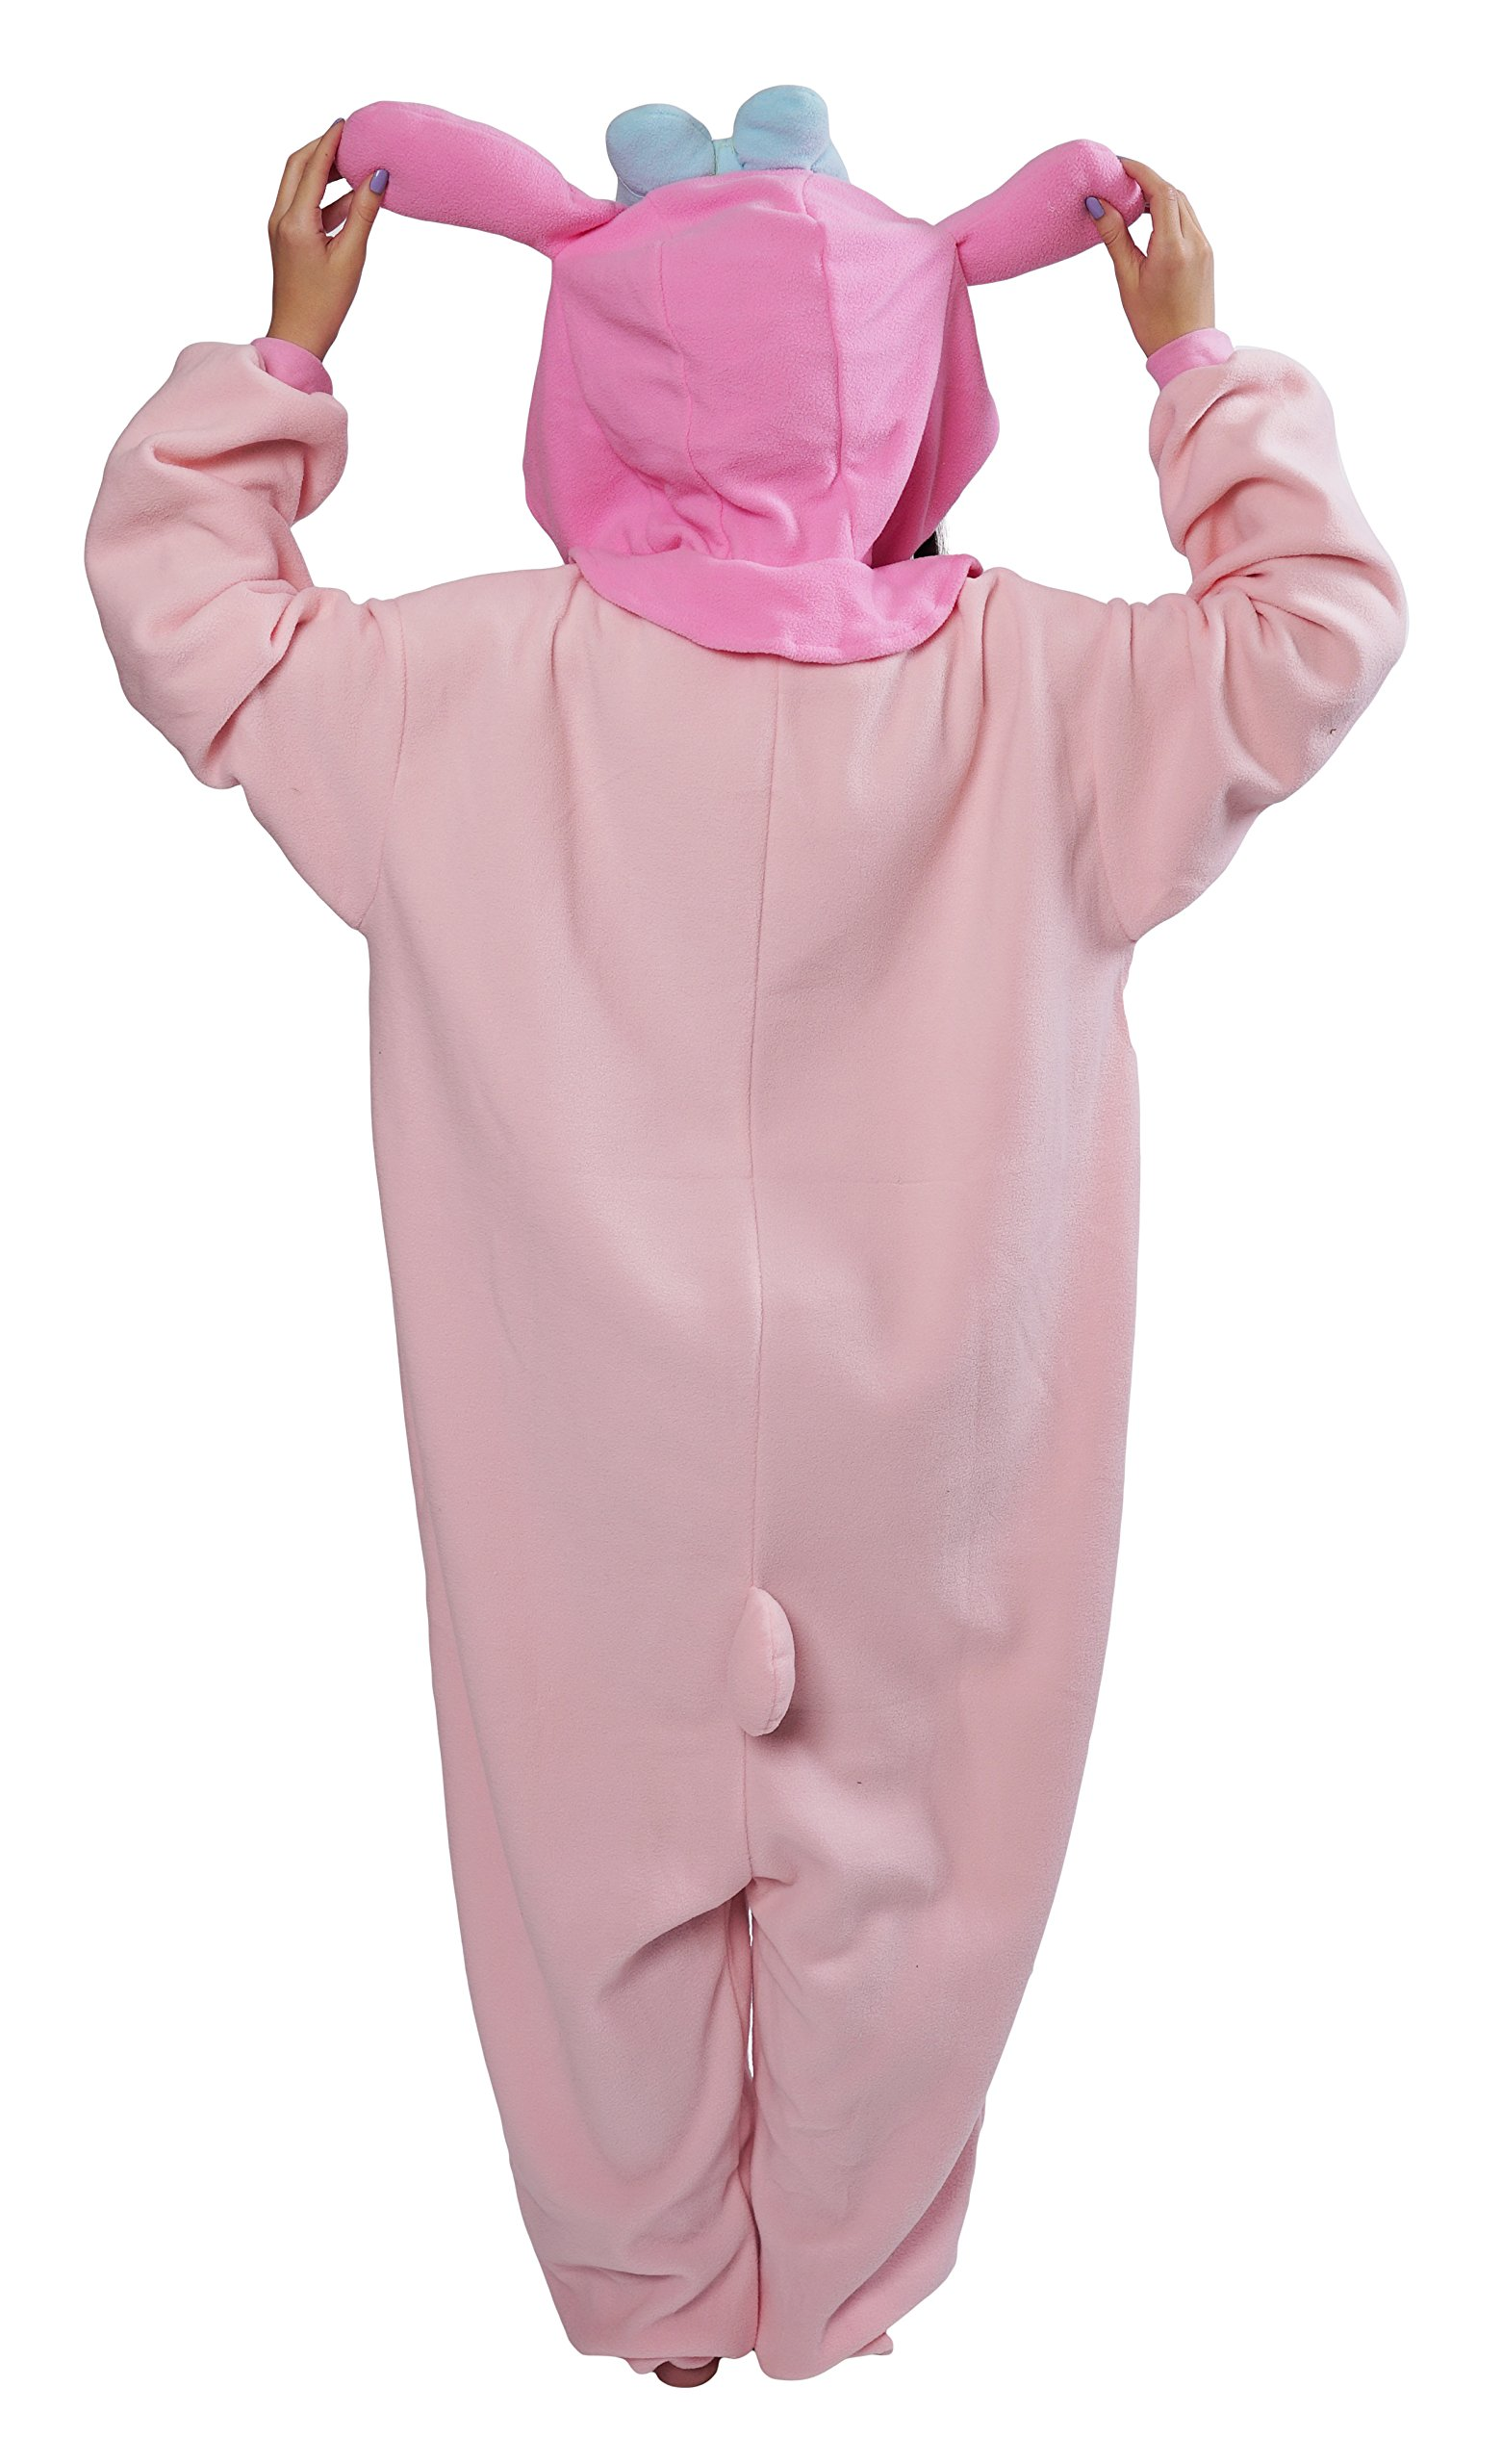 Disney Adults Onesie (Medium, My Melody)